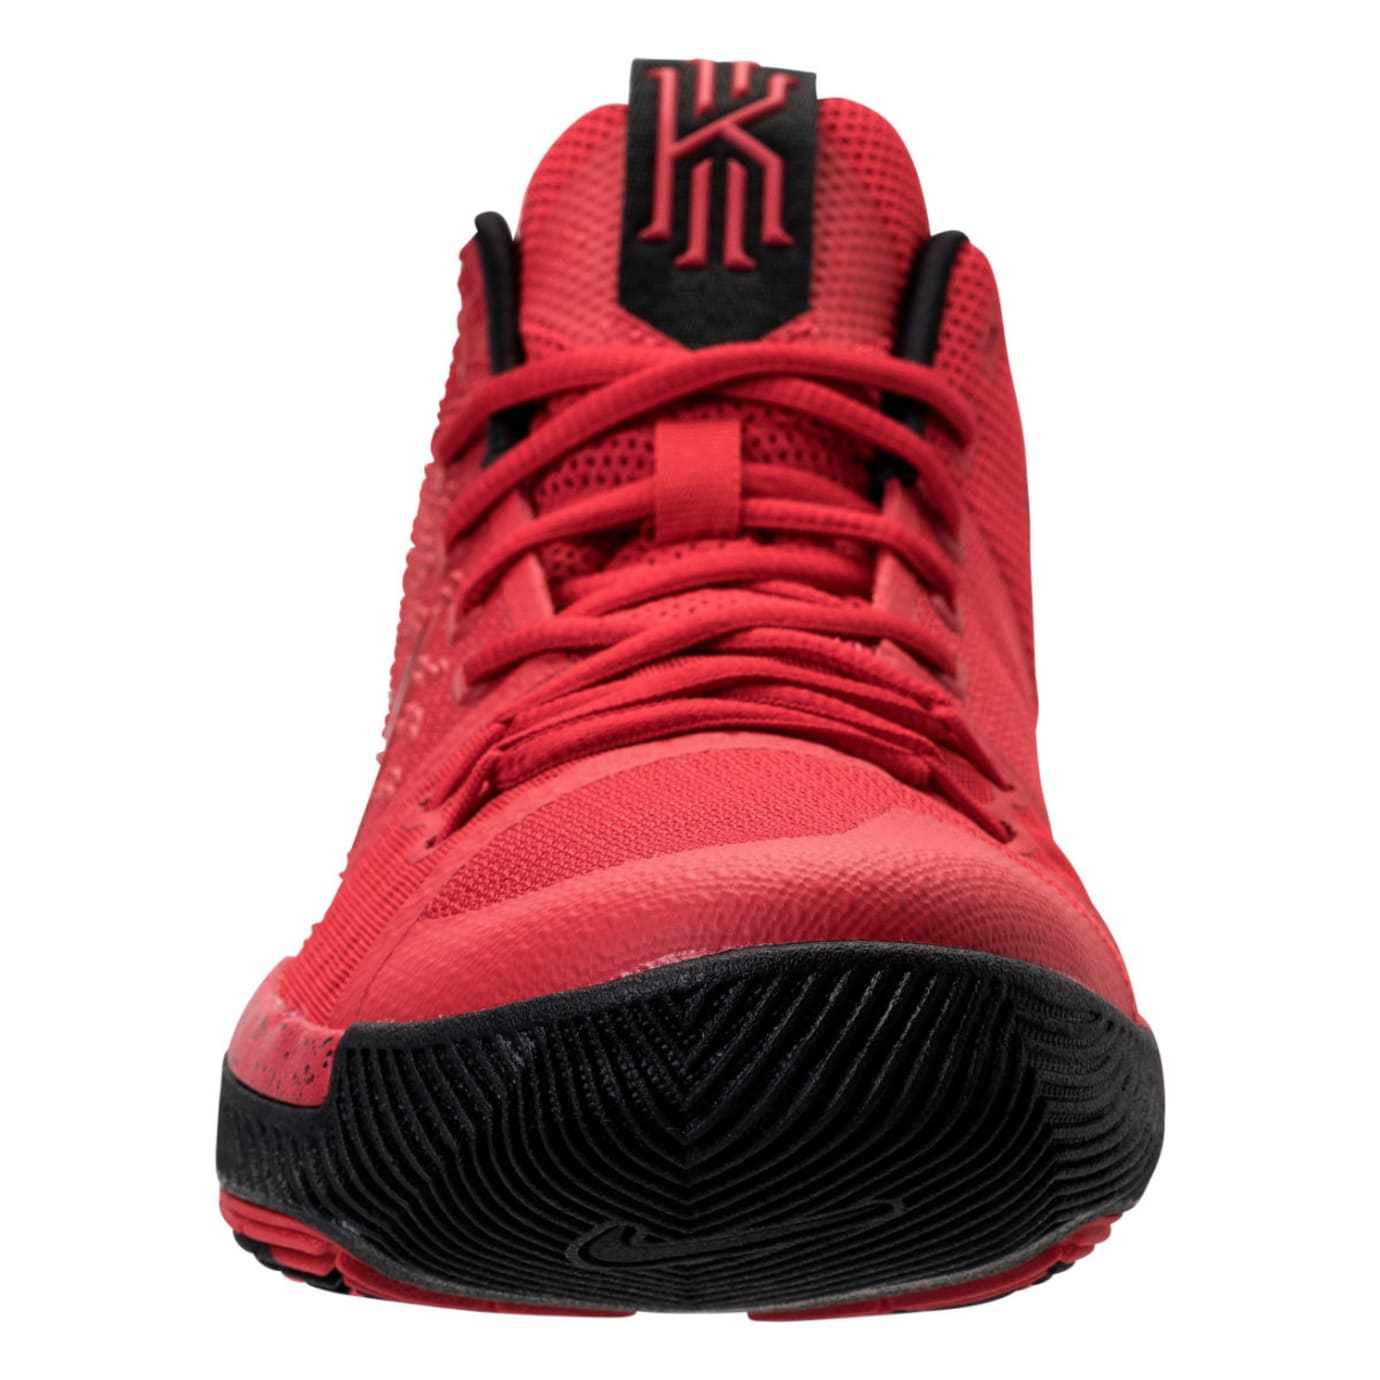 Nike Kyrie 3 Three-Point Contest University Red Release Date Front 852395-600